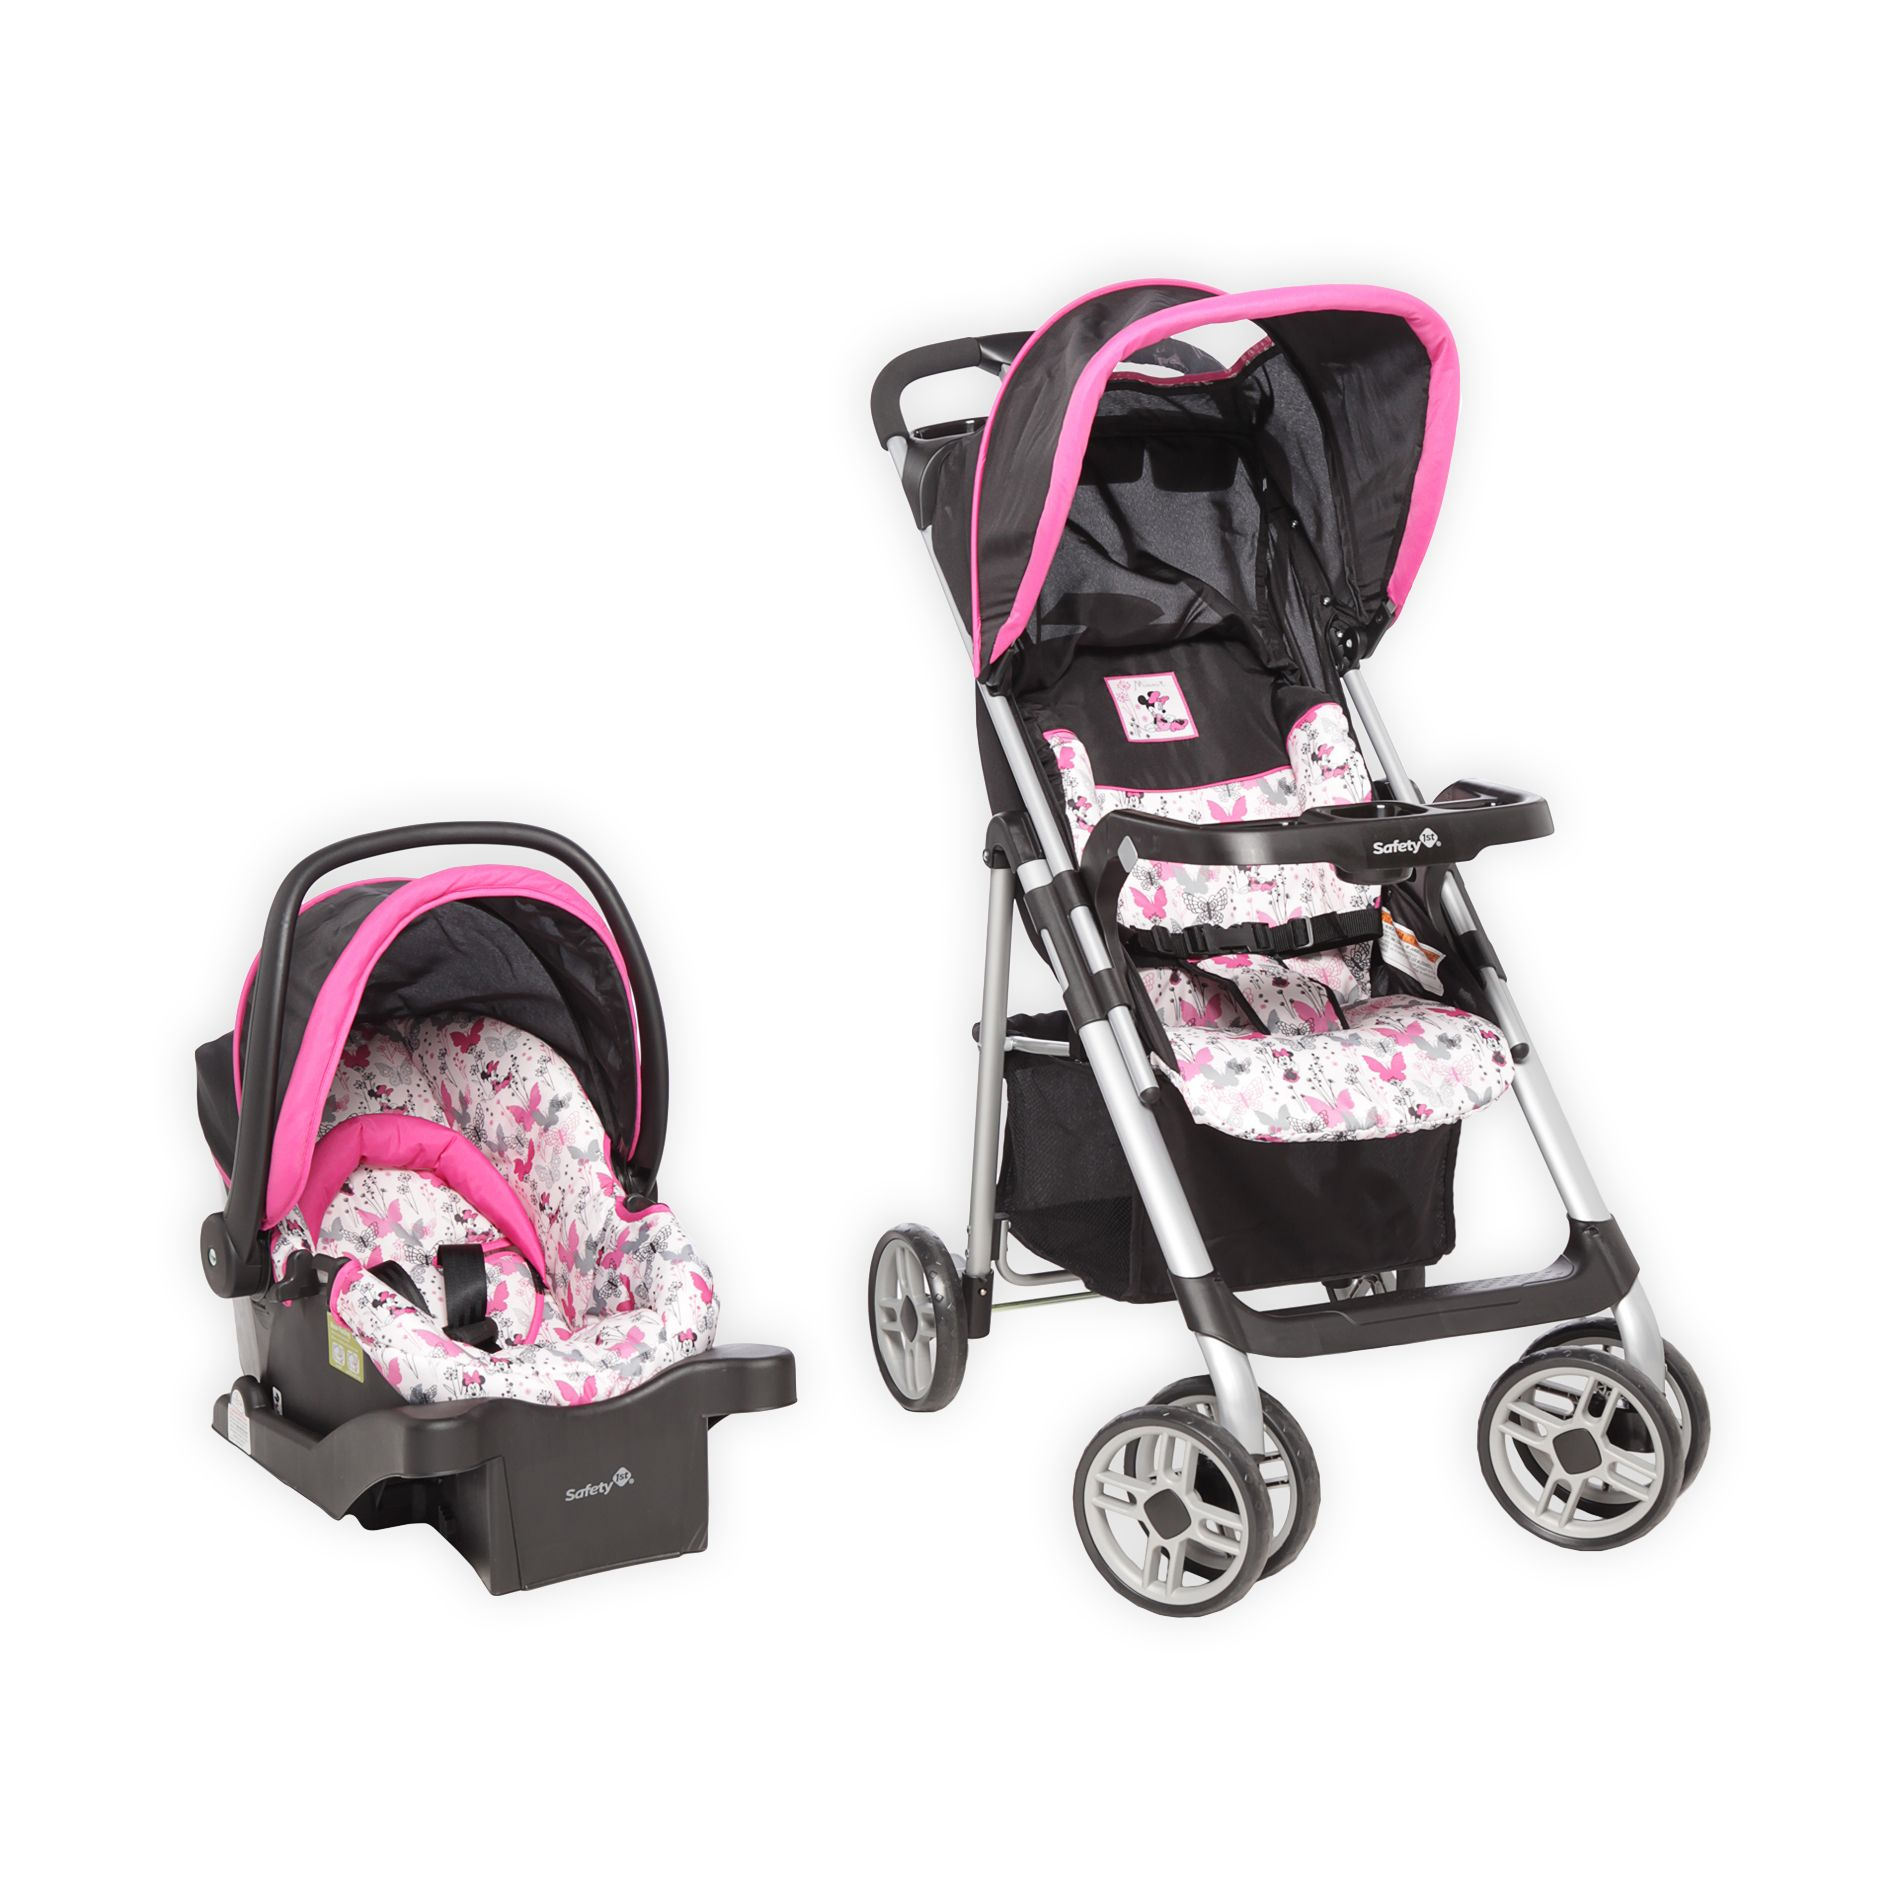 Disney baby saunter sport travel system today only 119